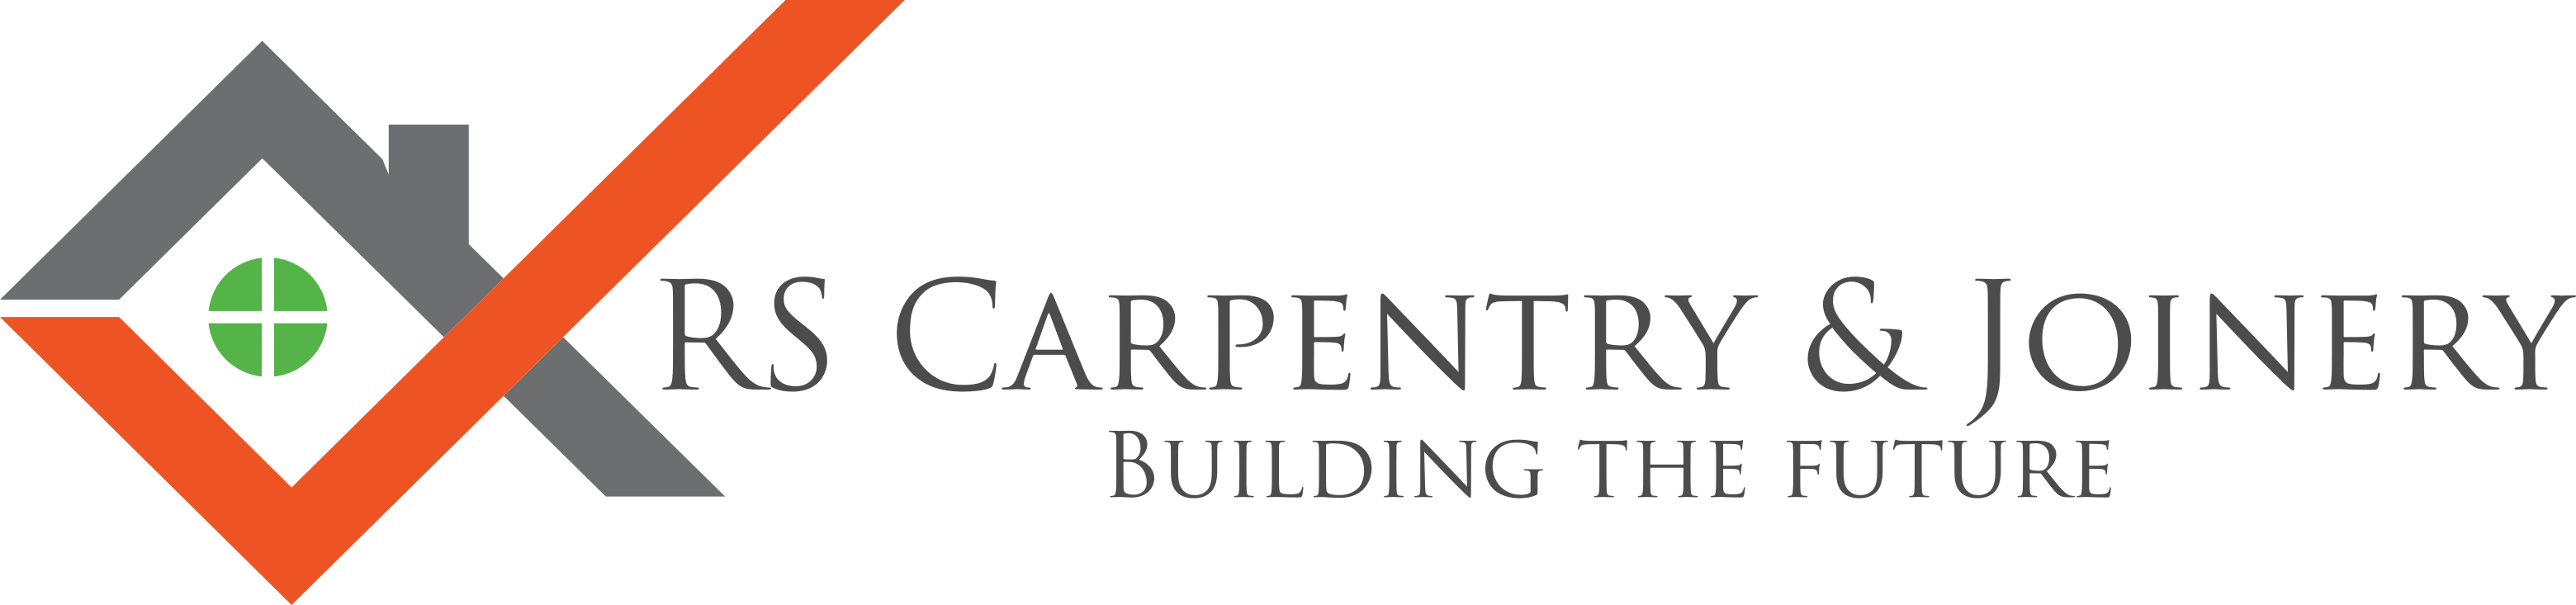 RS Carpentry & Joinery